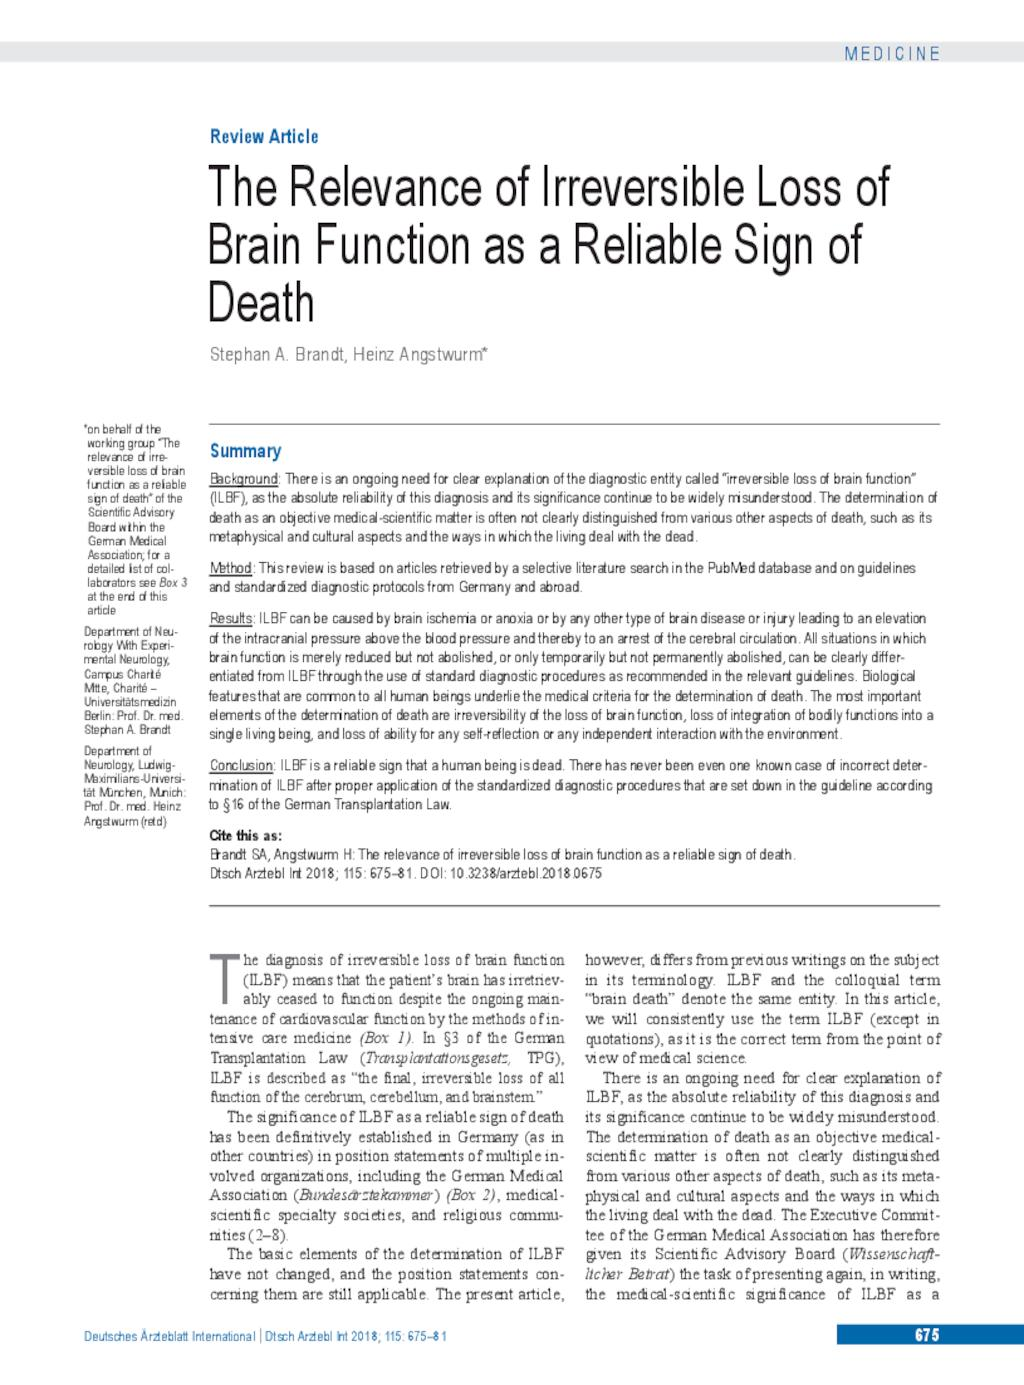 The Relevance of Irreversible Loss of Brain Function as a